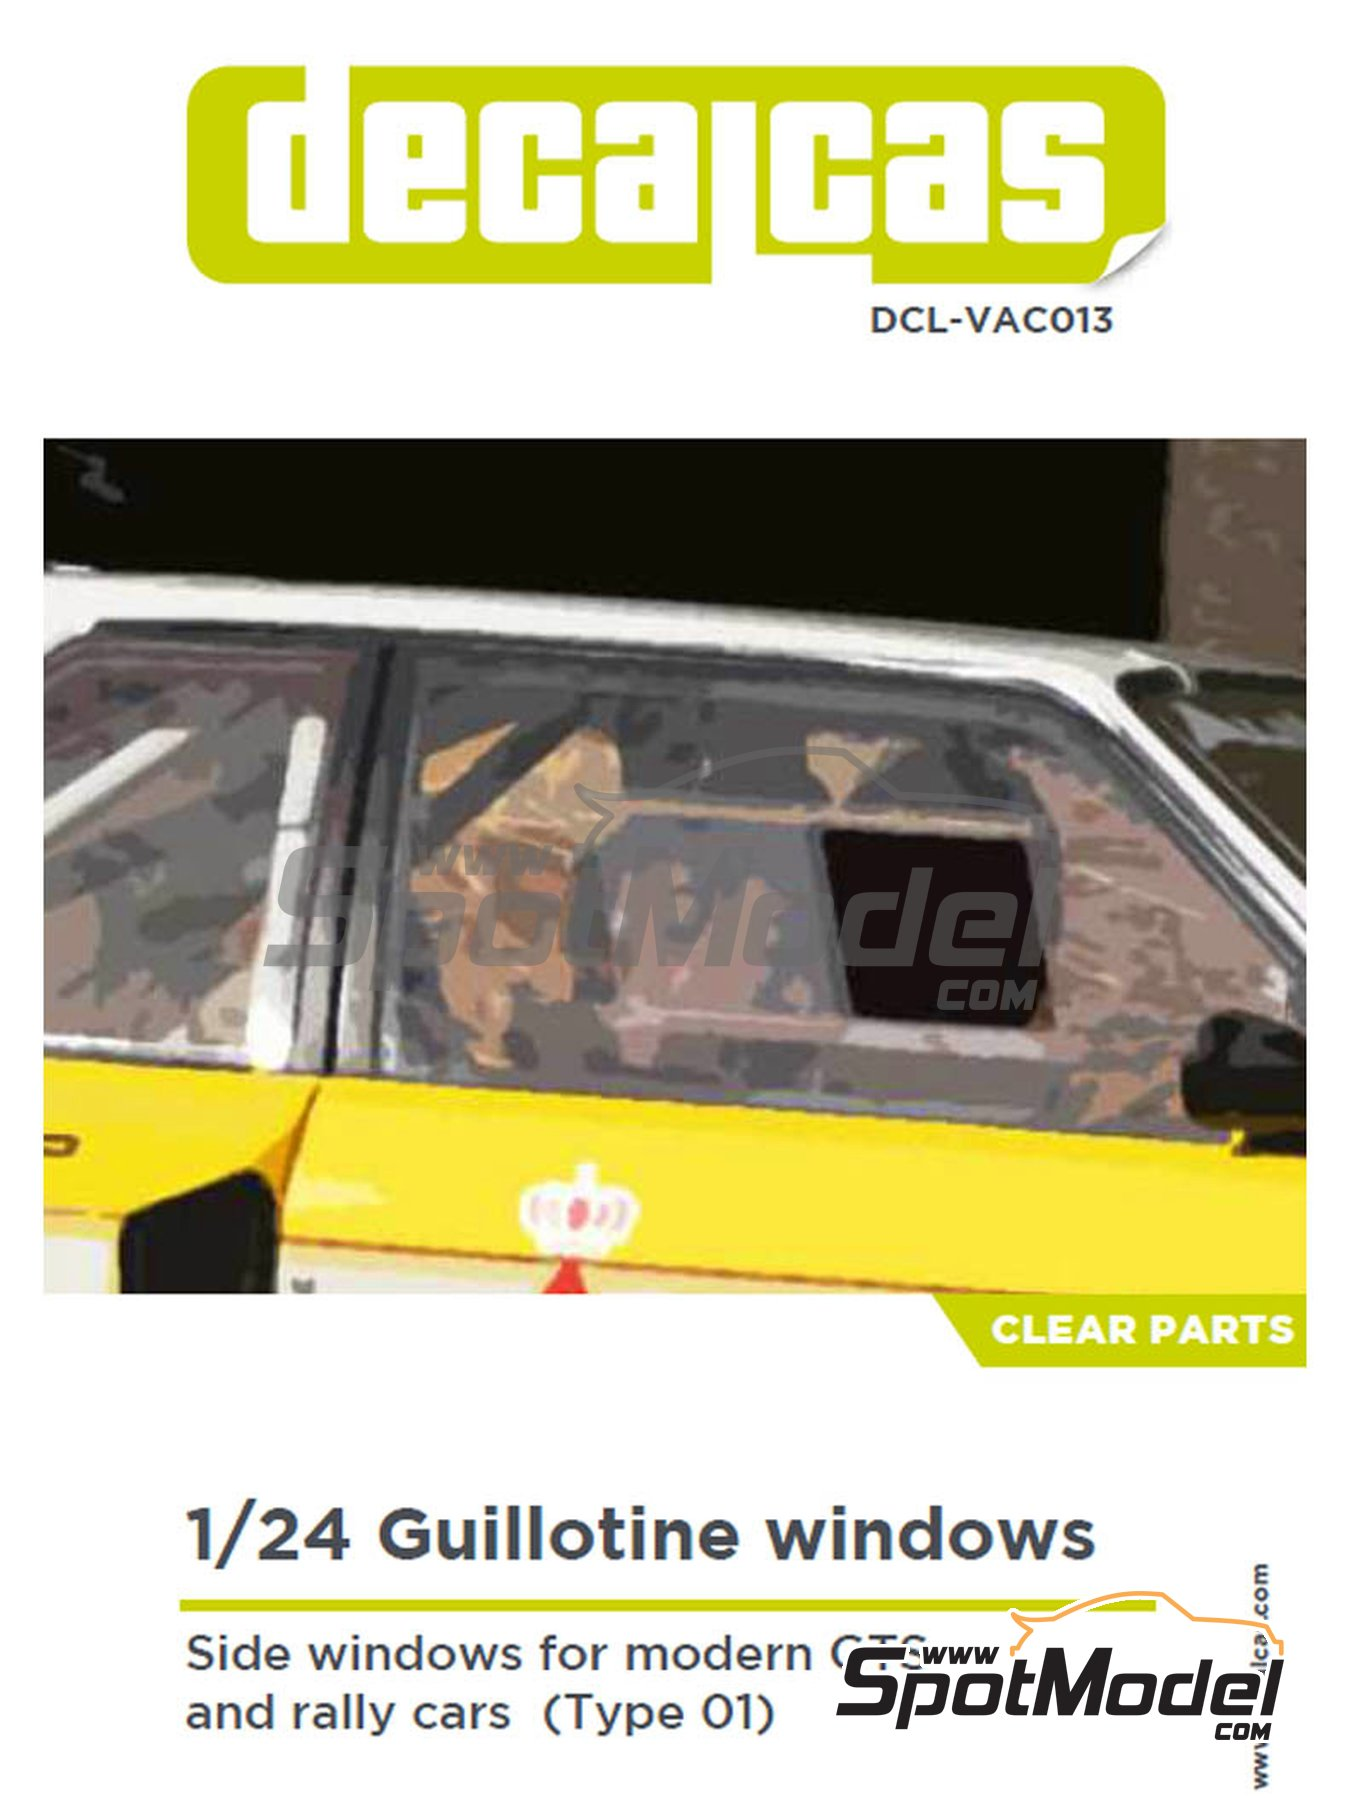 Guillotine windows for modern GTS and rally cars - Type 01 | Clear parts in 1/24 scale manufactured by Decalcas (ref.DCL-VAC013) image